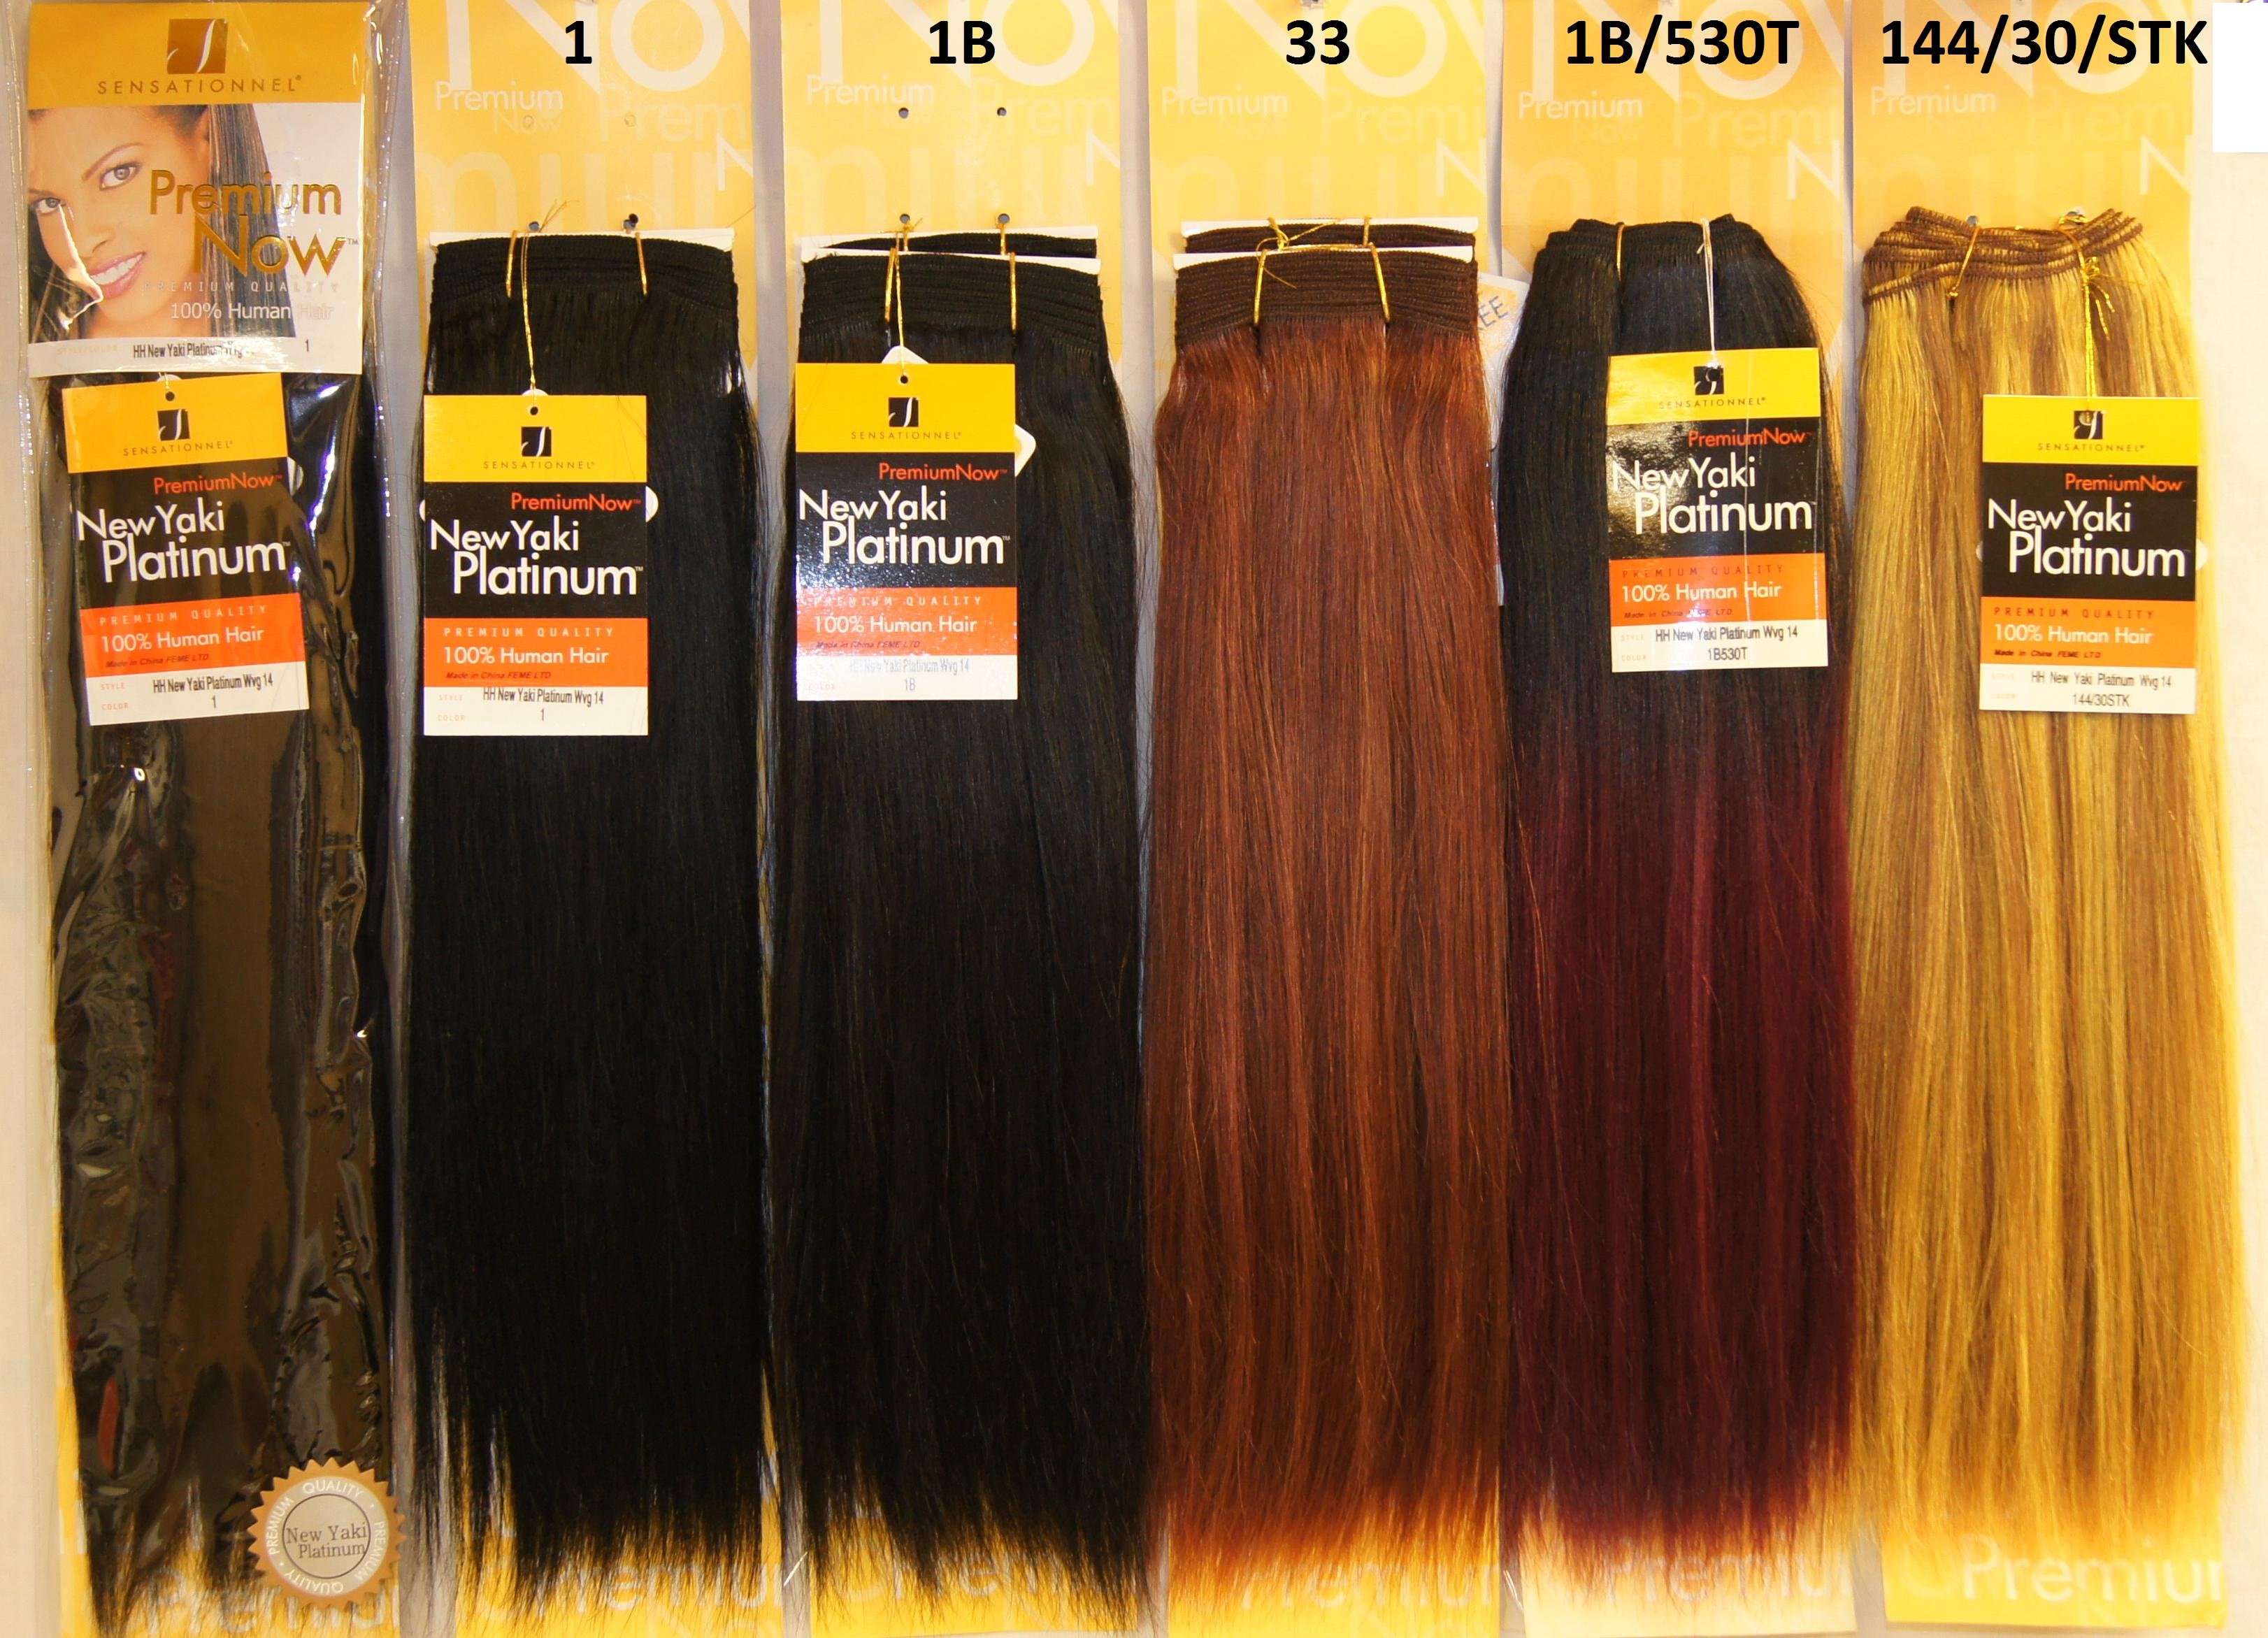 Sensationnel Premium Now 100 Human Hair New Yaki Platinum 39